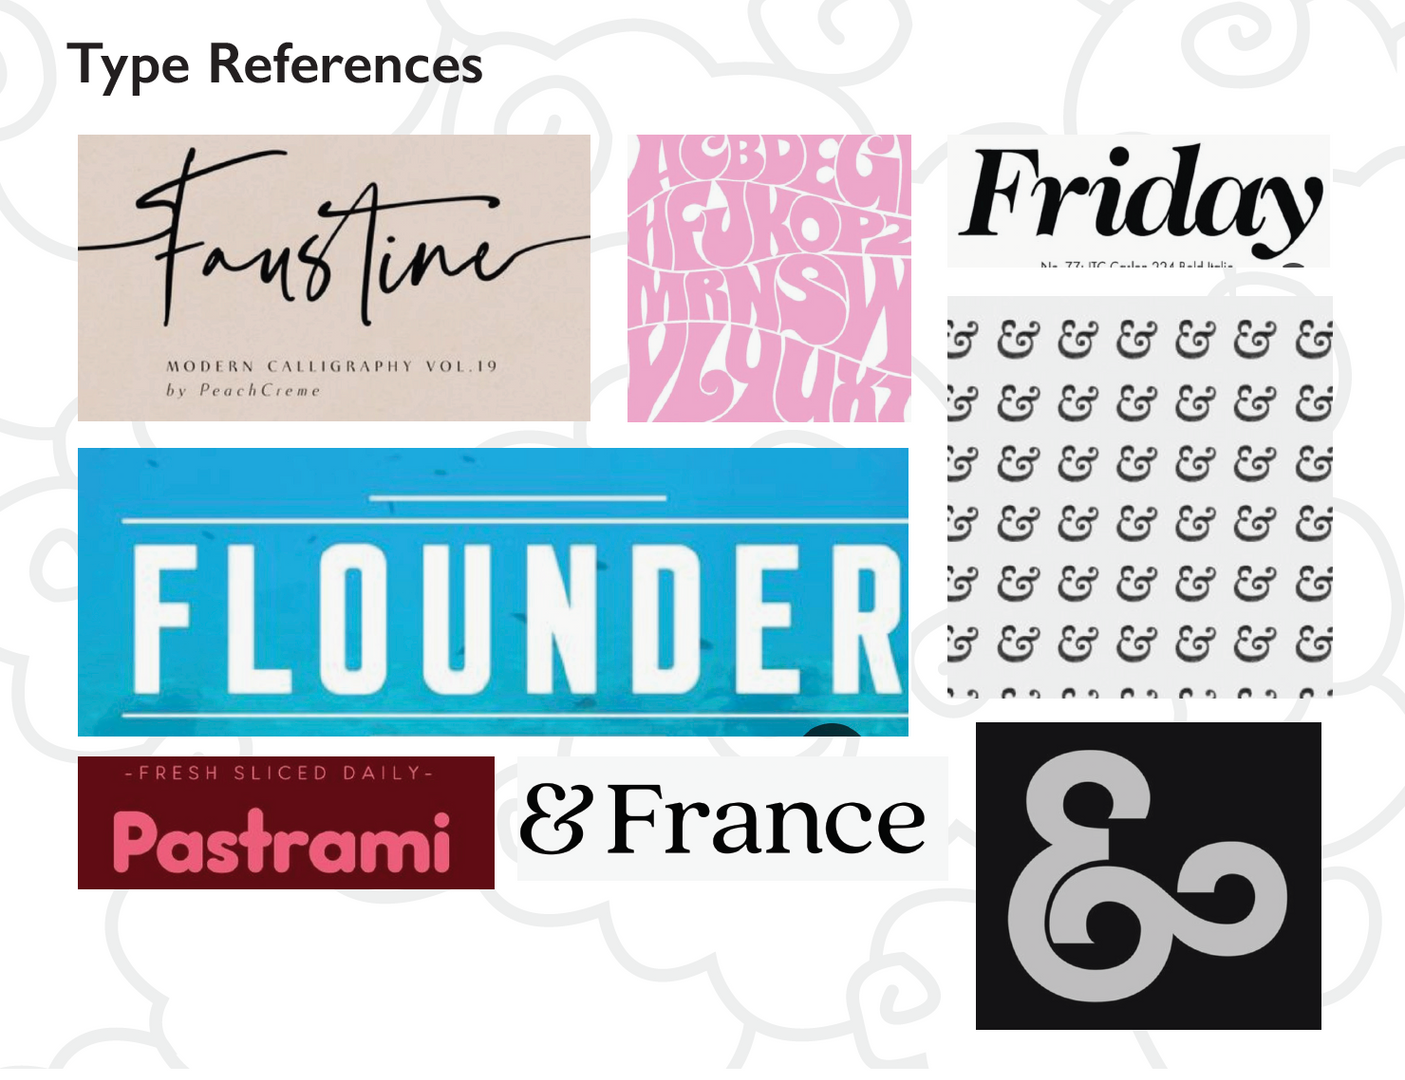 Type references